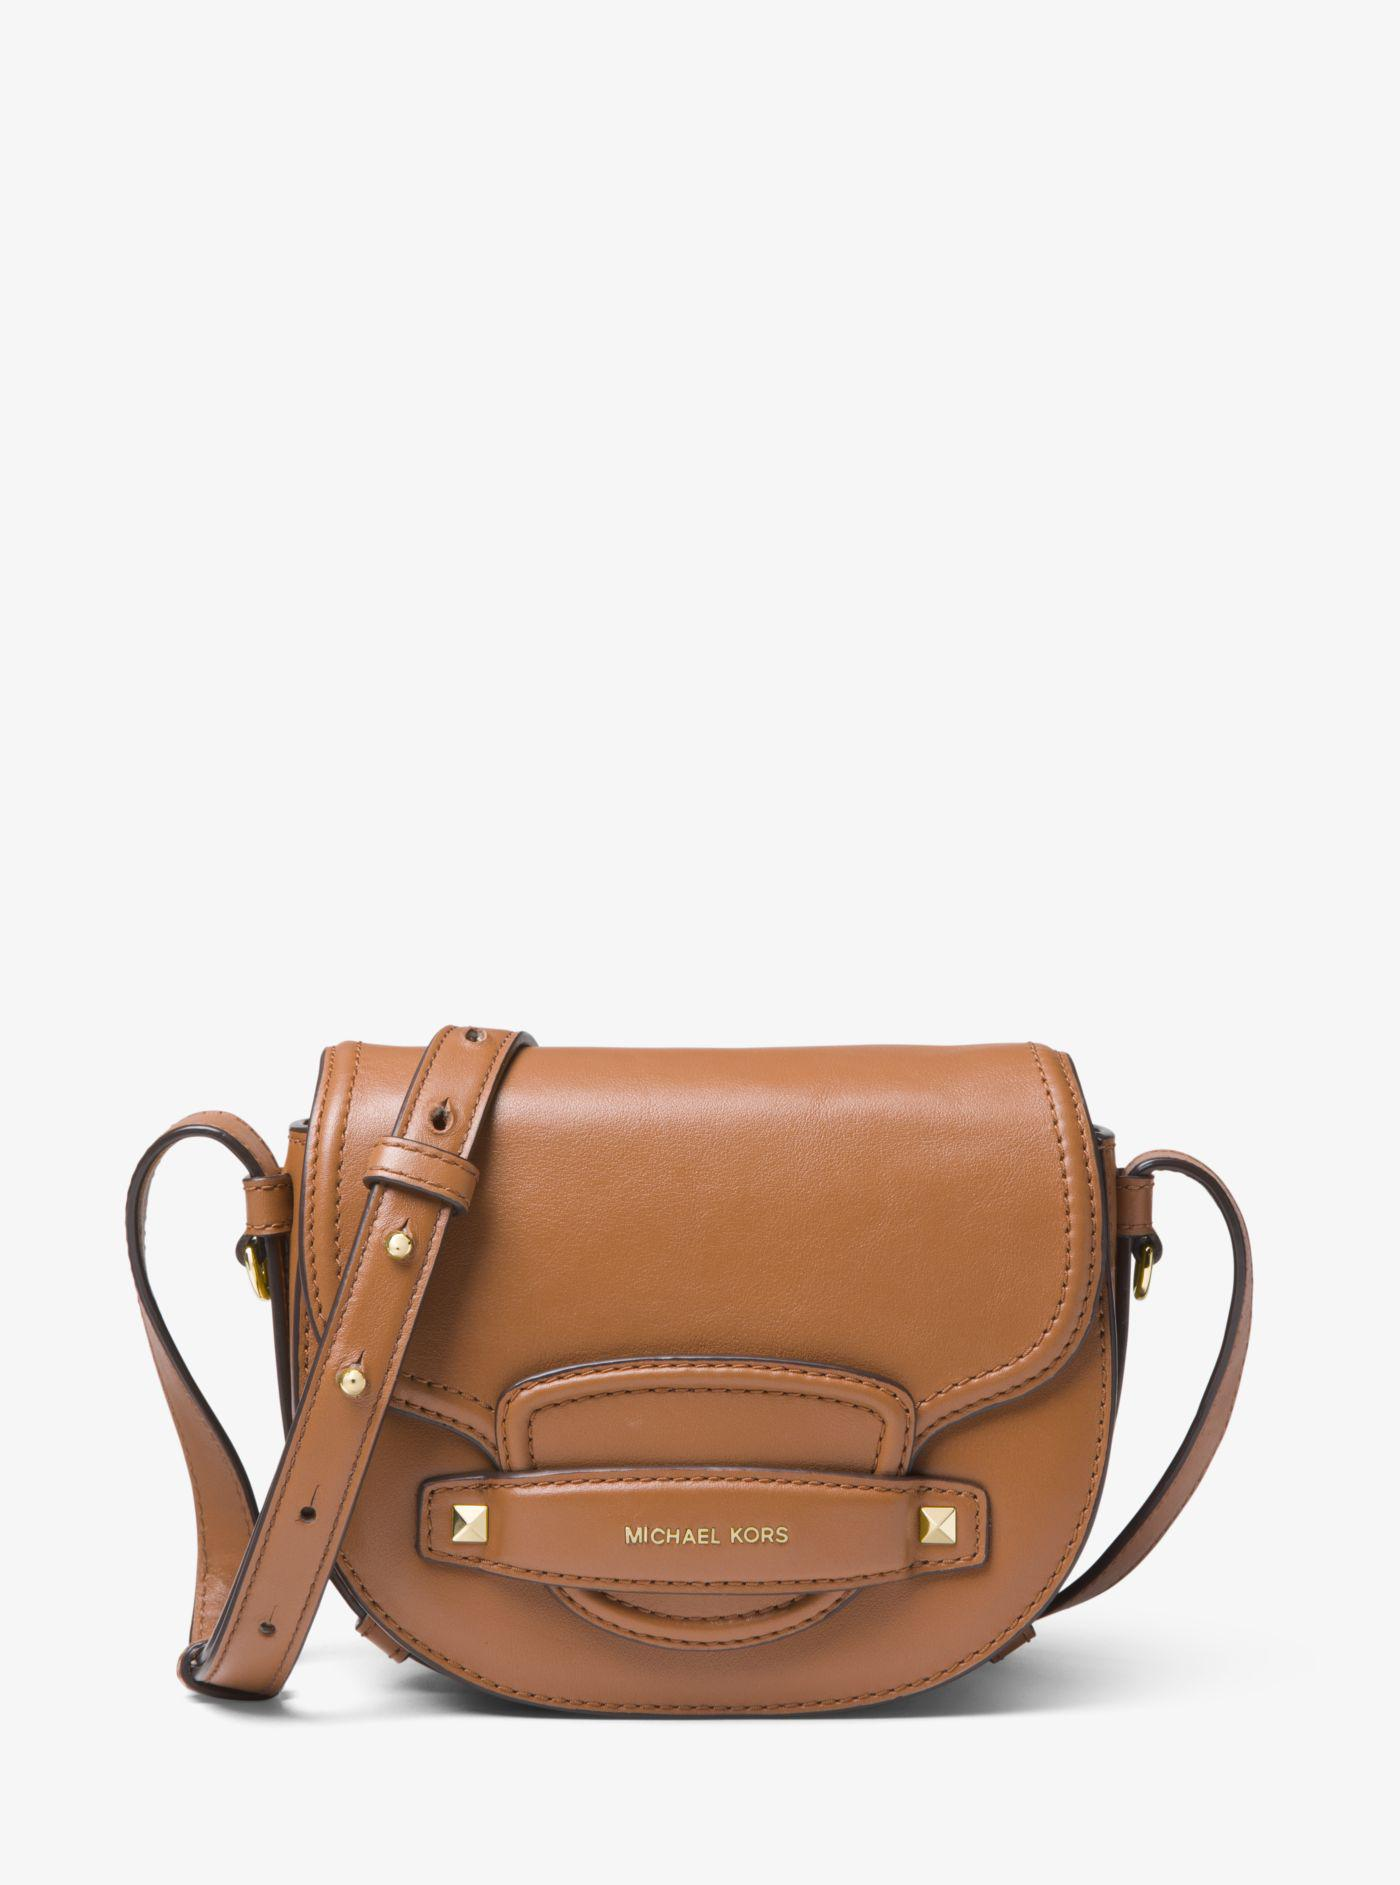 7ad5df8cdb7 Lyst - Michael Kors Cary Small Leather Saddle Bag in Brown